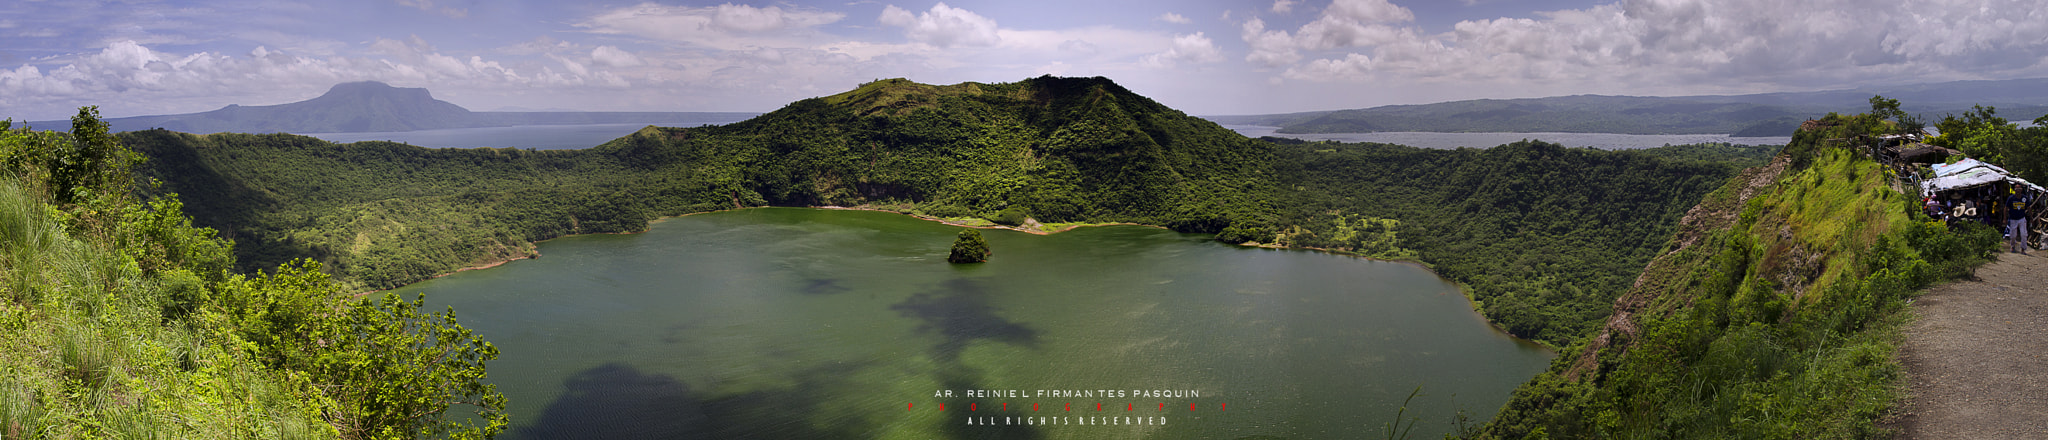 Photograph Taal  by Reiniel Pasquin on 500px